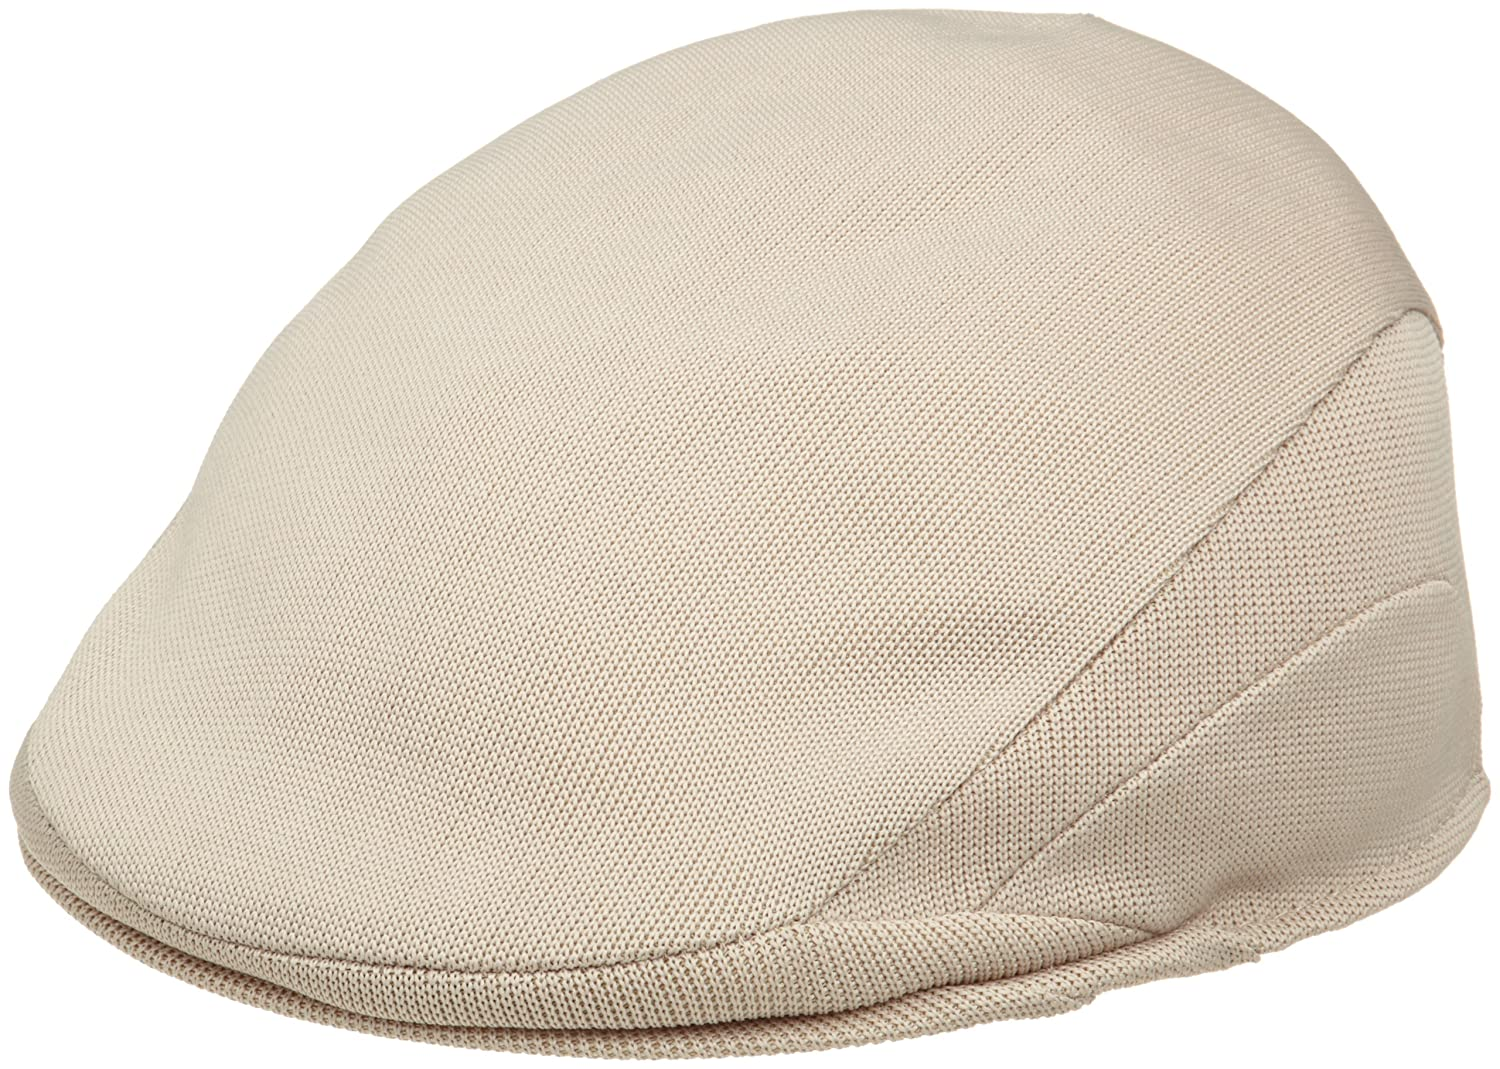 Kangol Heritage Collection Men s Tropic 507 Flat Cap with a Modern ... 48469192add0